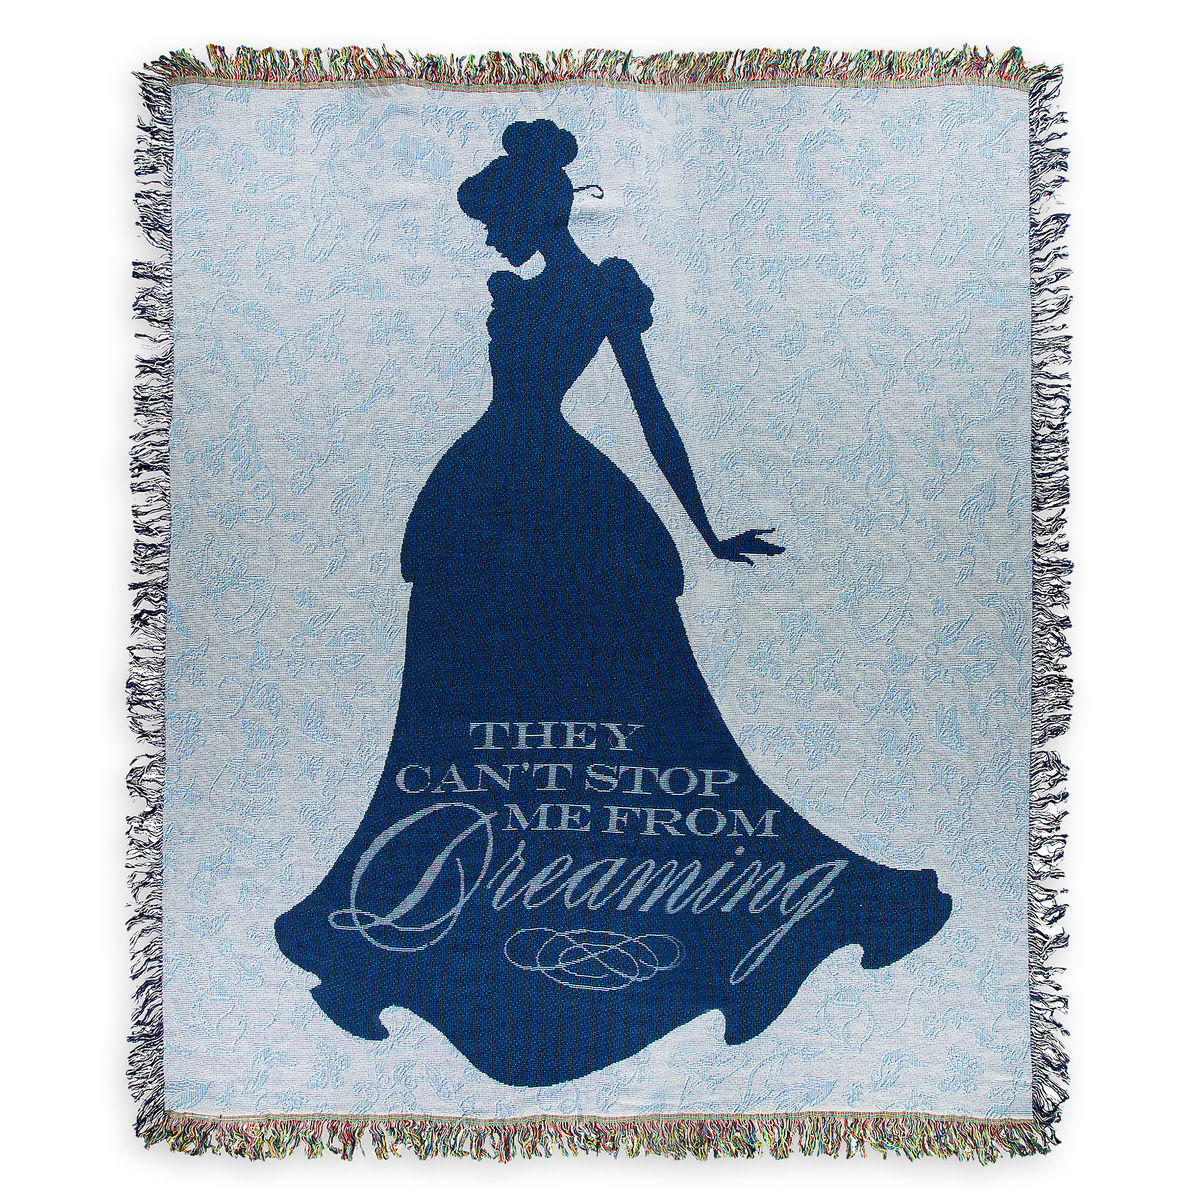 Disney Tapestry Woven Throw - Cinderella - Can't Stop me from Dreaming